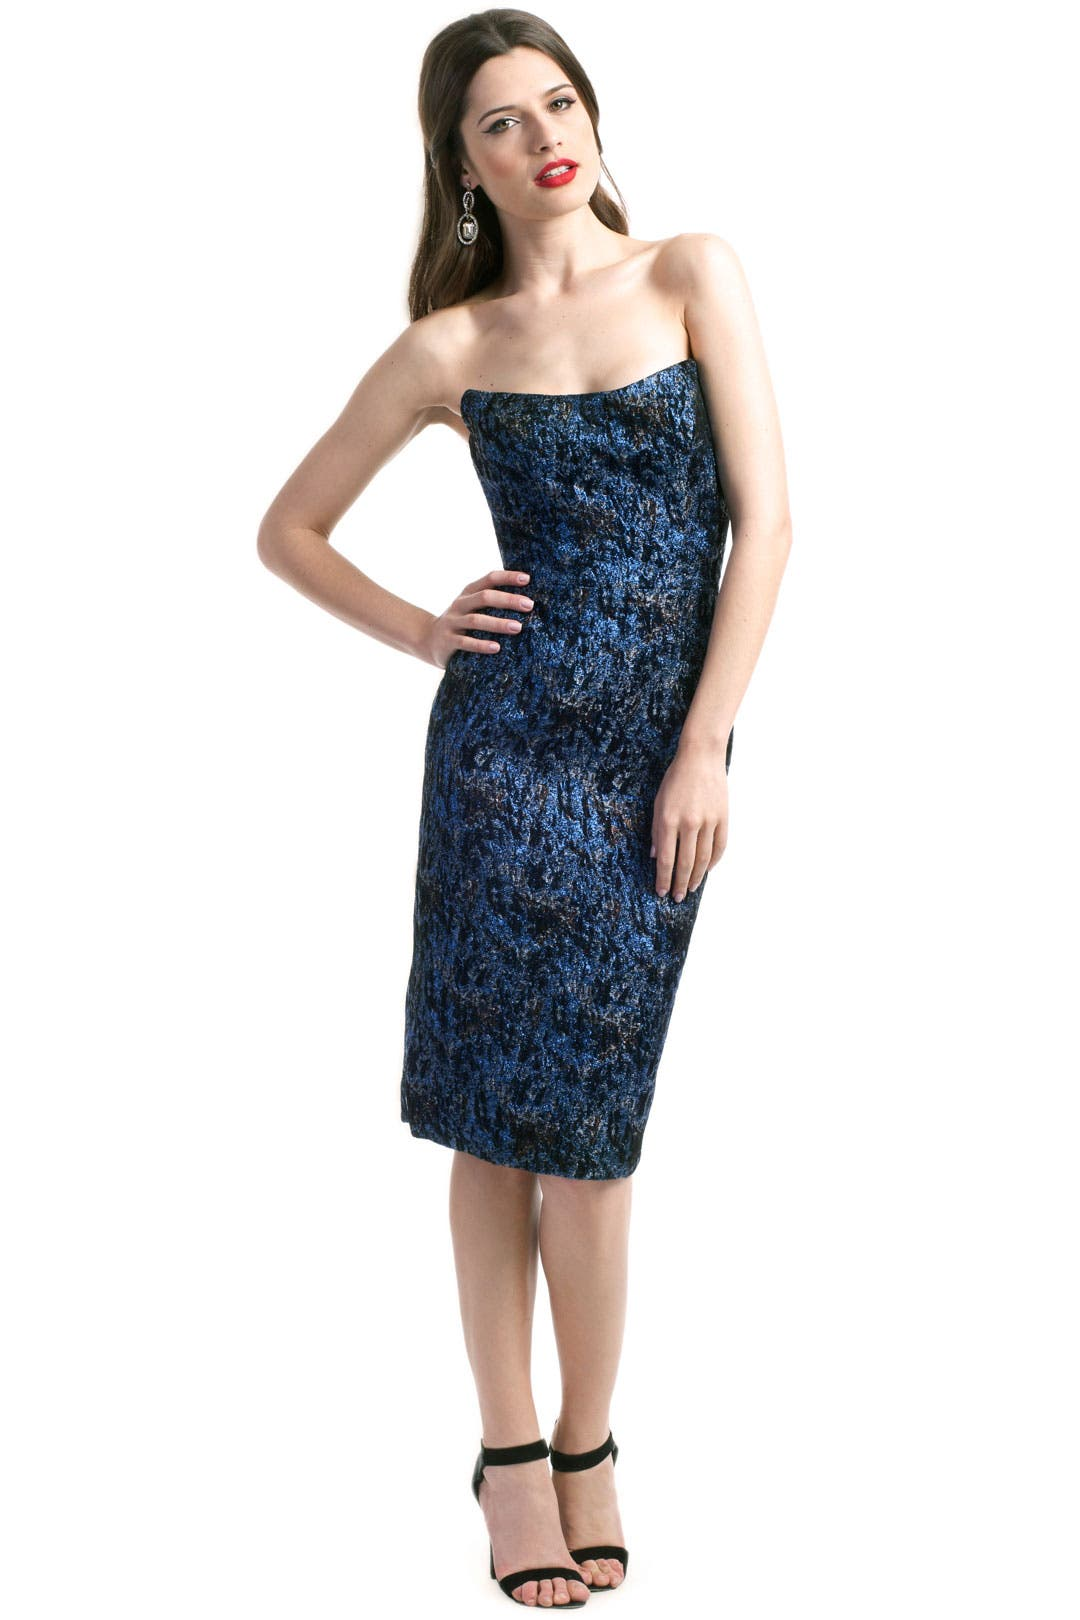 Atomic Azurite Dress by Chris Benz